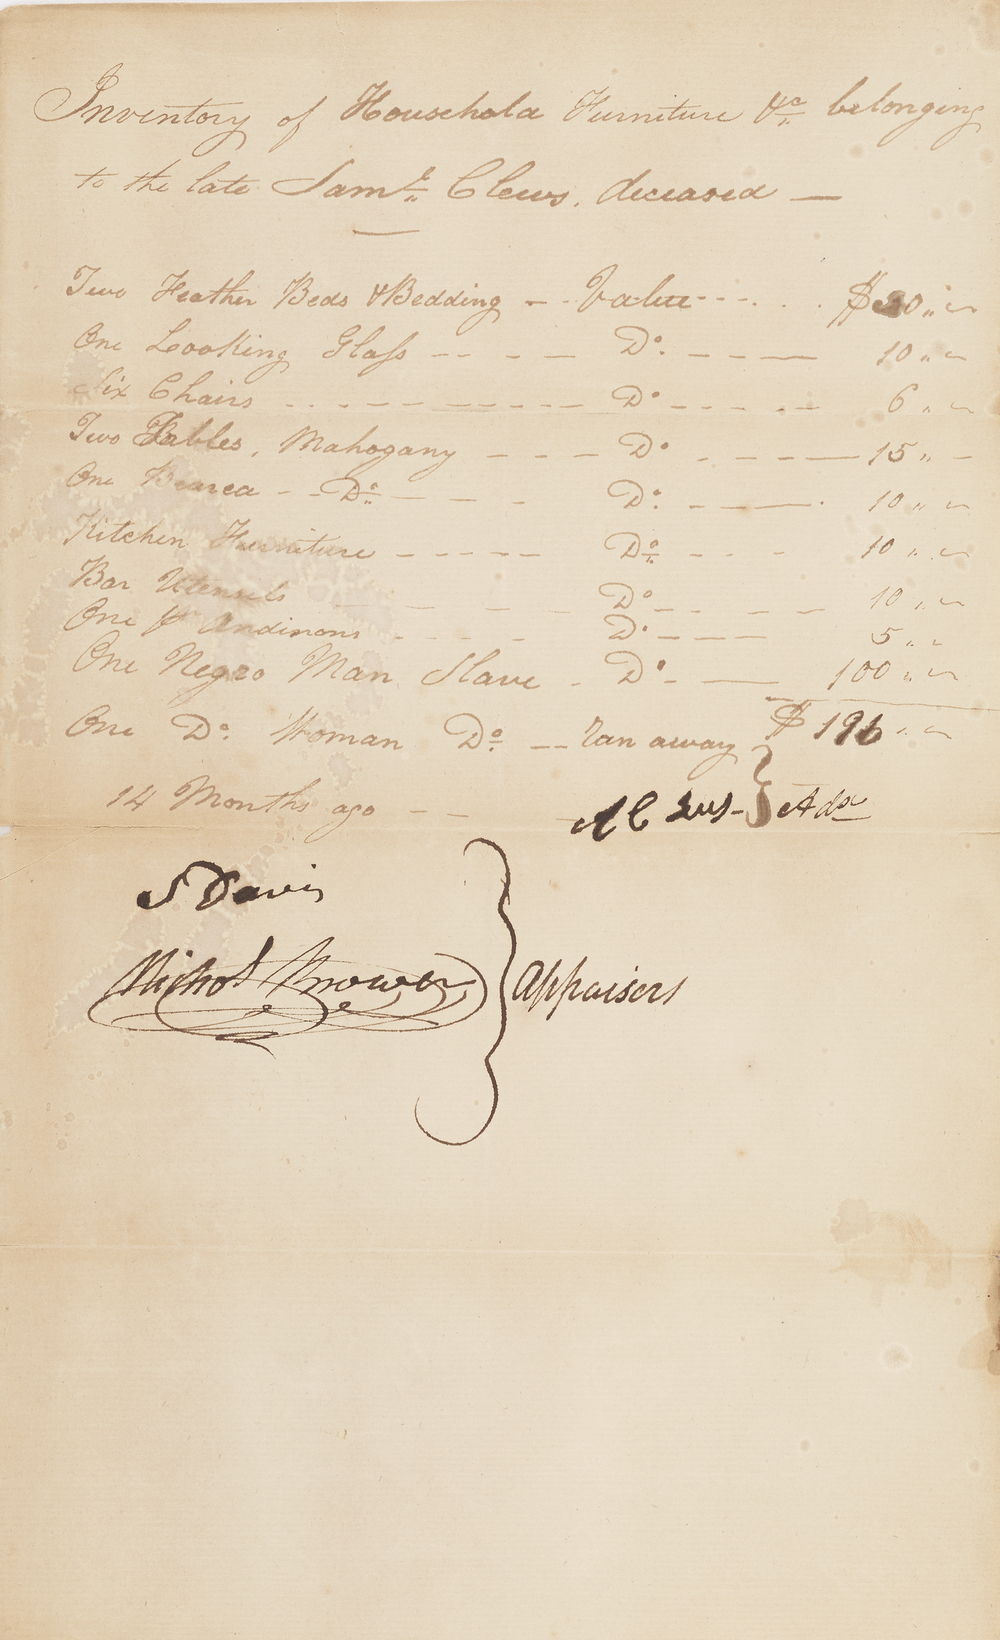 Estate Inventory of Samuel Clews